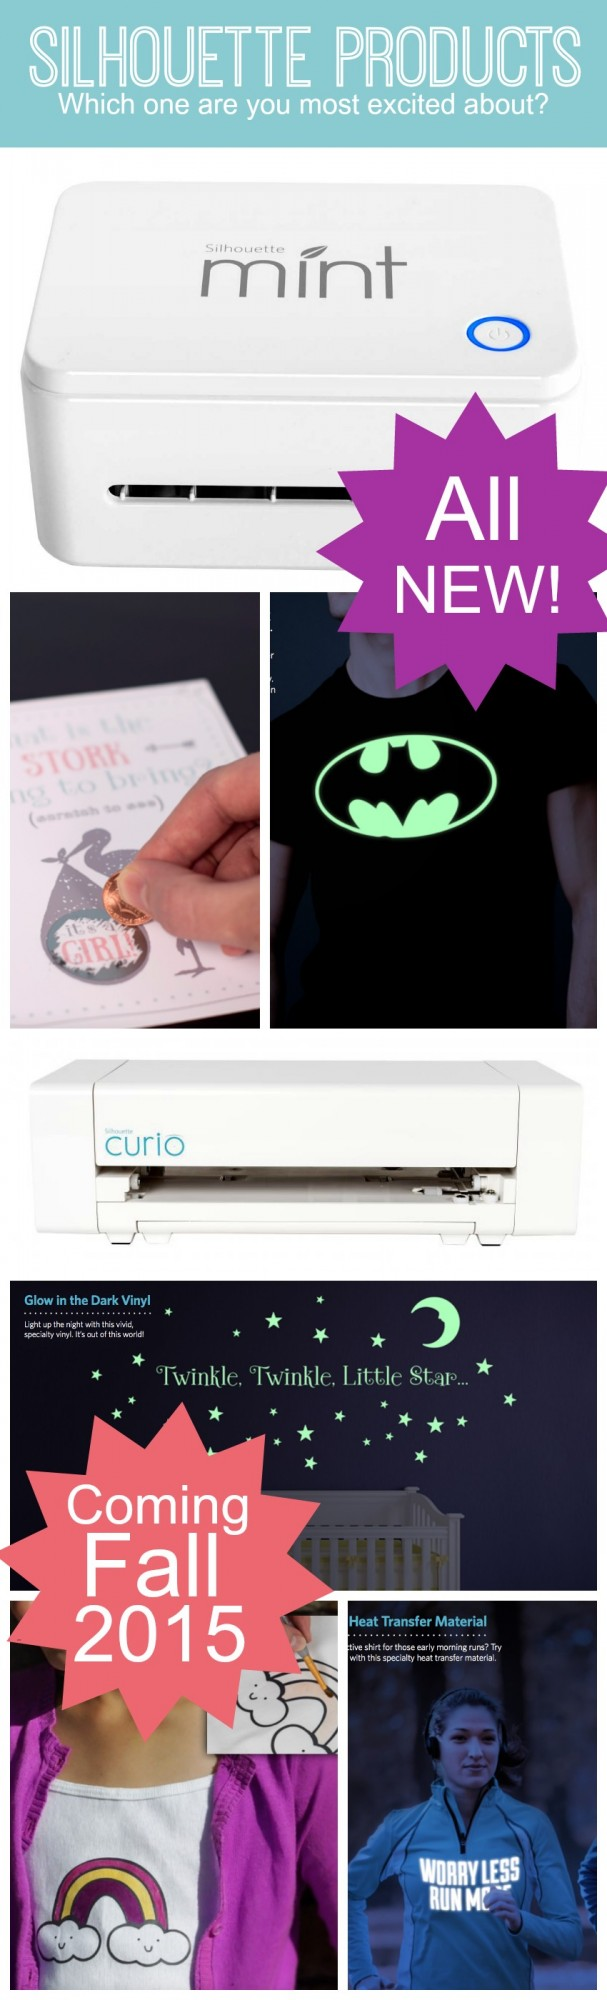 New Silhouette products to be excited about. Including the Silhouette Mint, Silhouette Curio, scratch off sheets, glow in the dark vinyl, etc. Click for all the details!